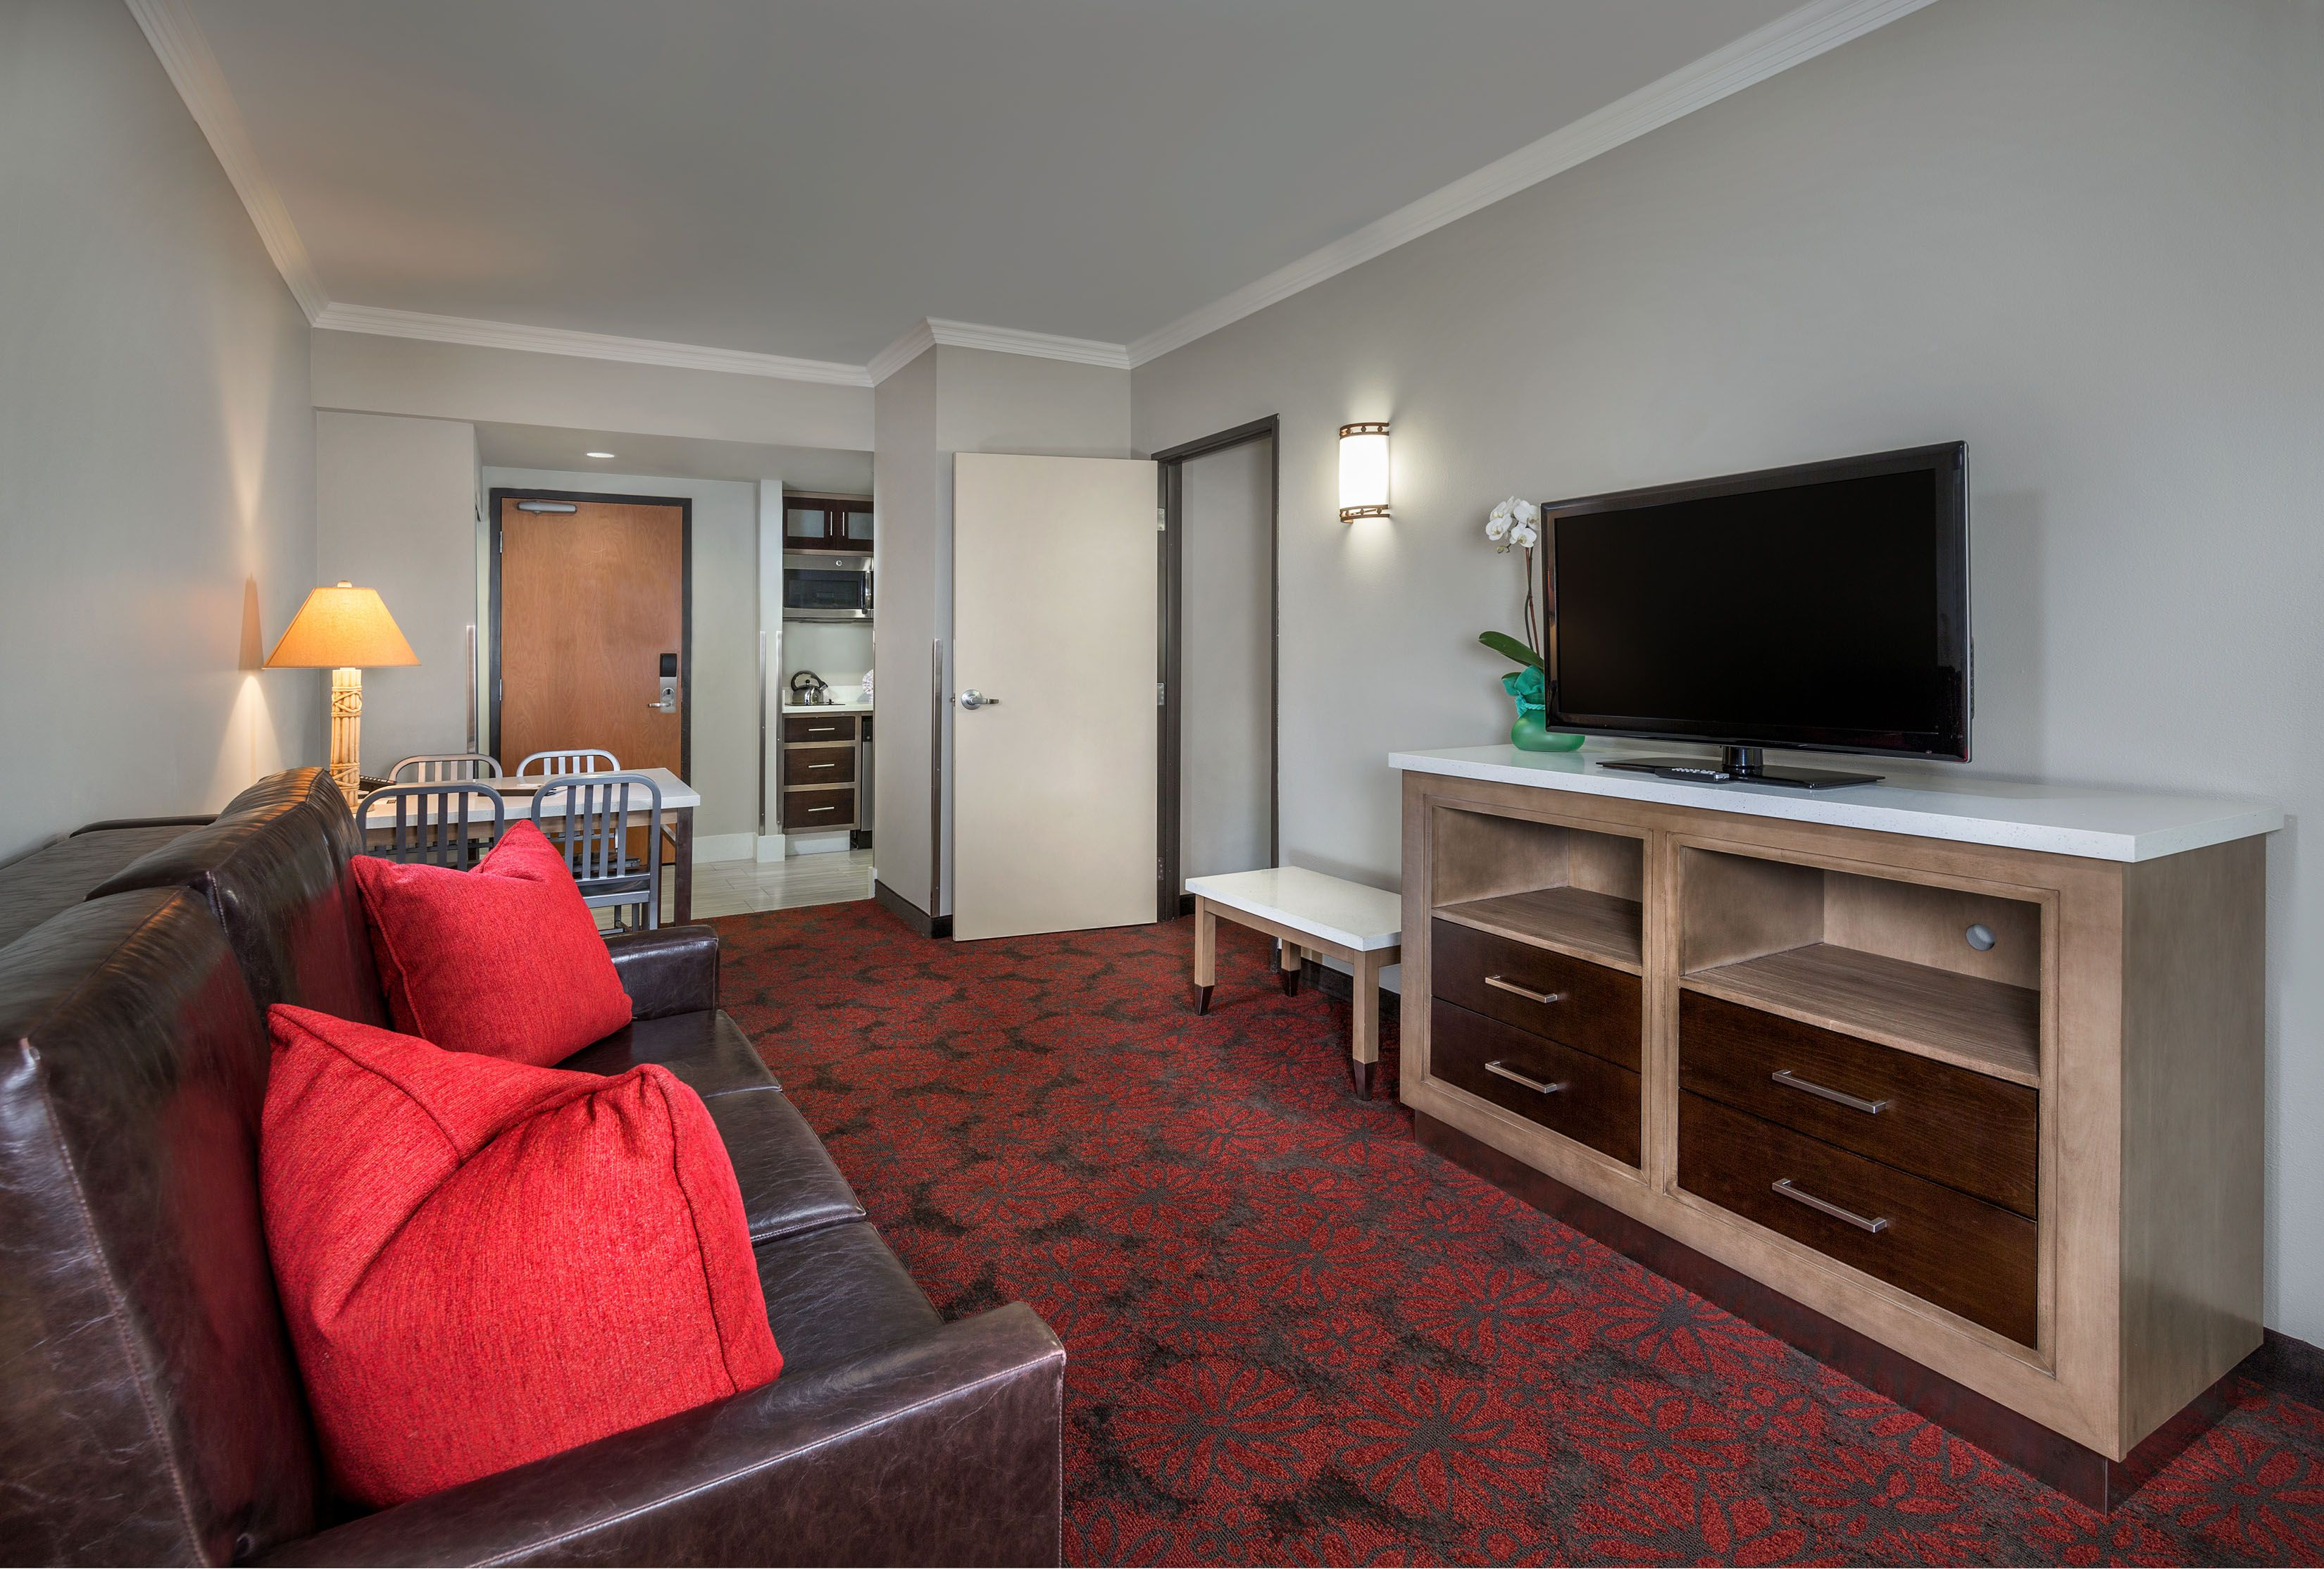 Anaheim Hotels With Kitchen Near Disneyland Hansgrohe Faucet Parts 1 Bedroom Suite Living Room Sofa Sleeper Hotel Rooms And Suites Desert Palms